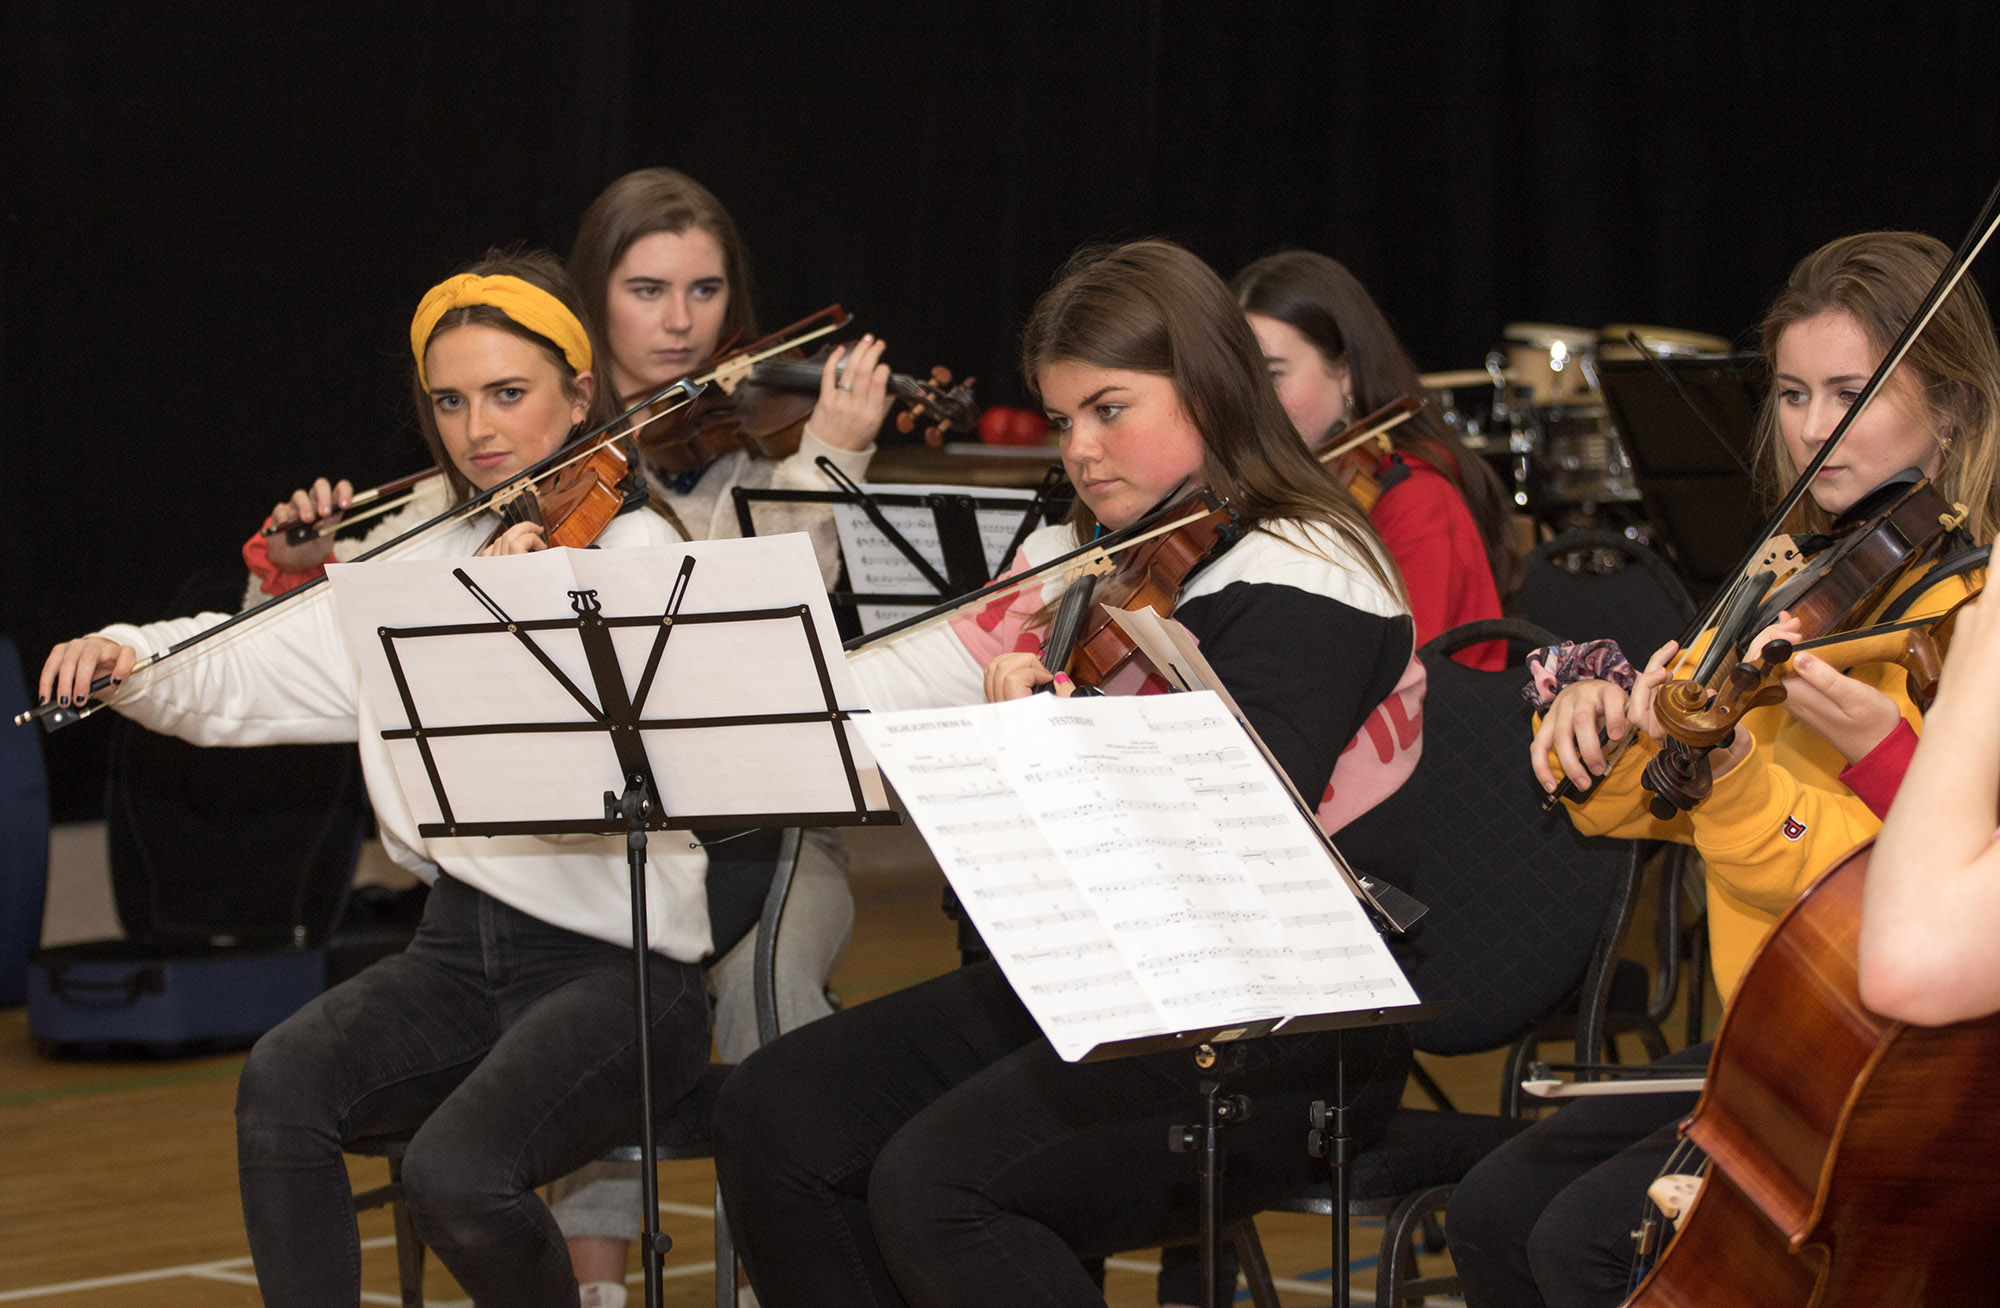 Symphonic Waves Youth Orchestra Clonbur Rehearsal